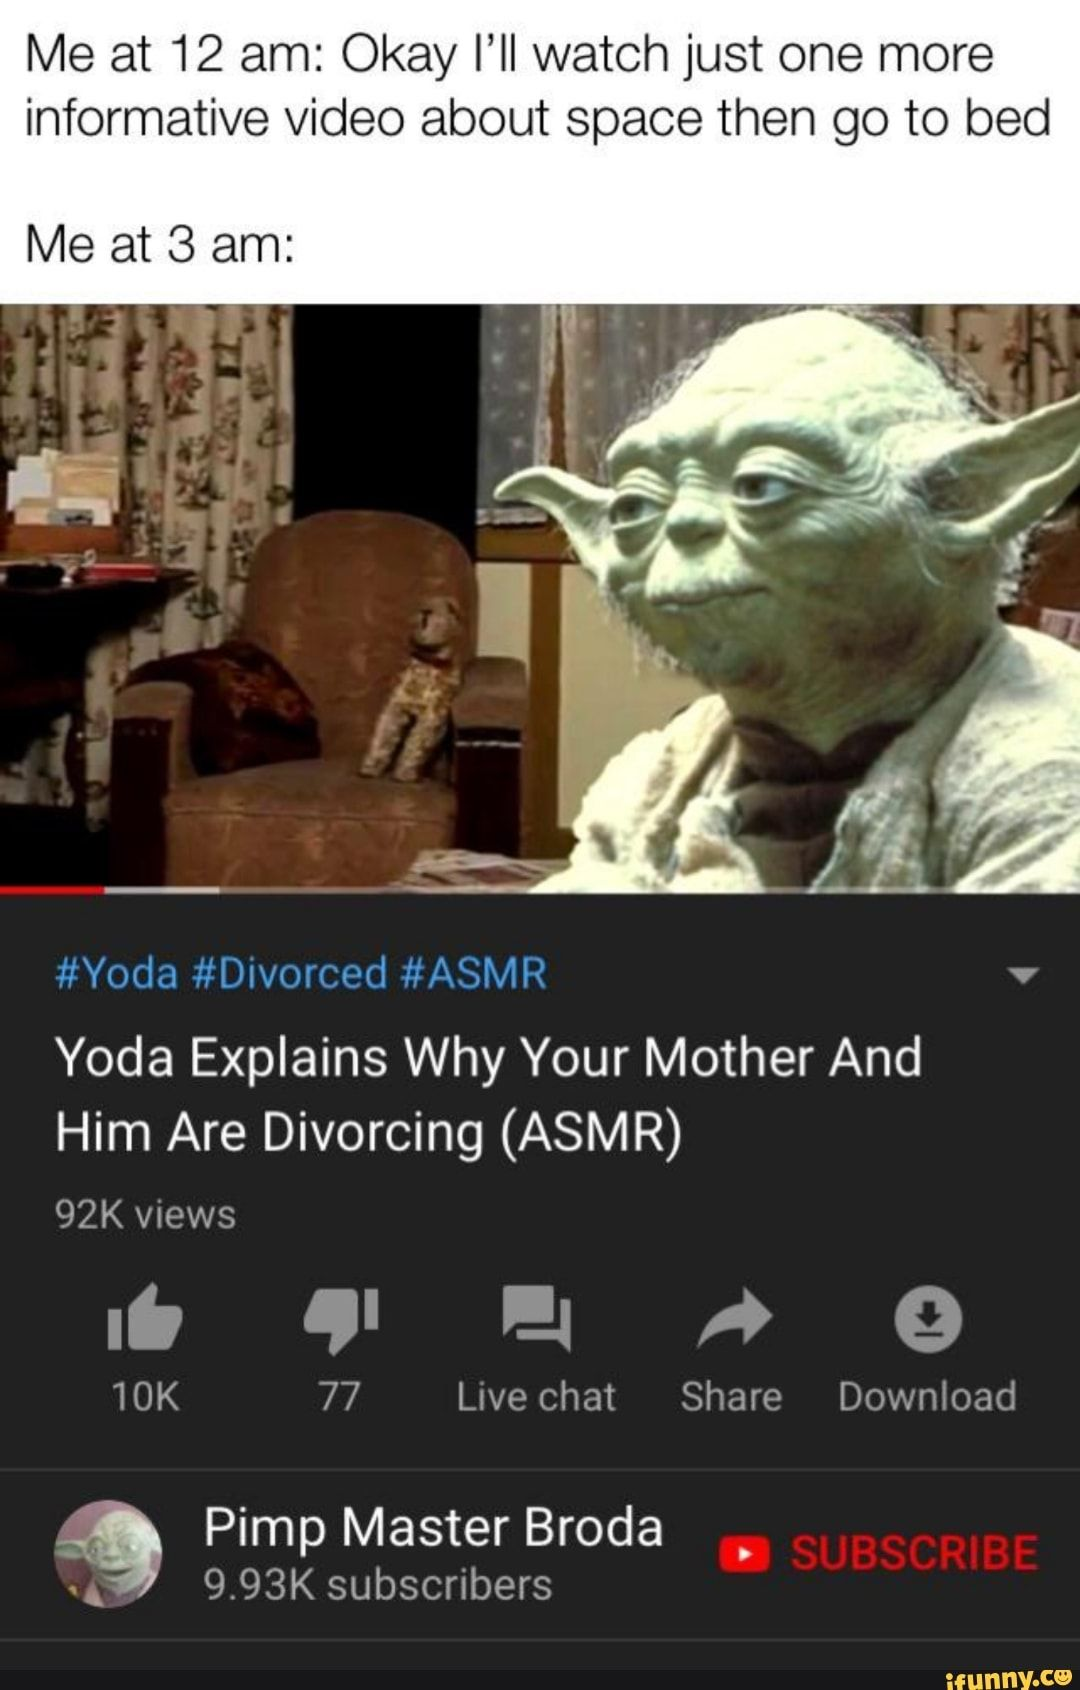 Me At 12 Am Okay I Ll Watch Just One More Informative Video About Space Then Go To Bed Me At 3 Am M Slim 1 V Yoda Explains Why Your